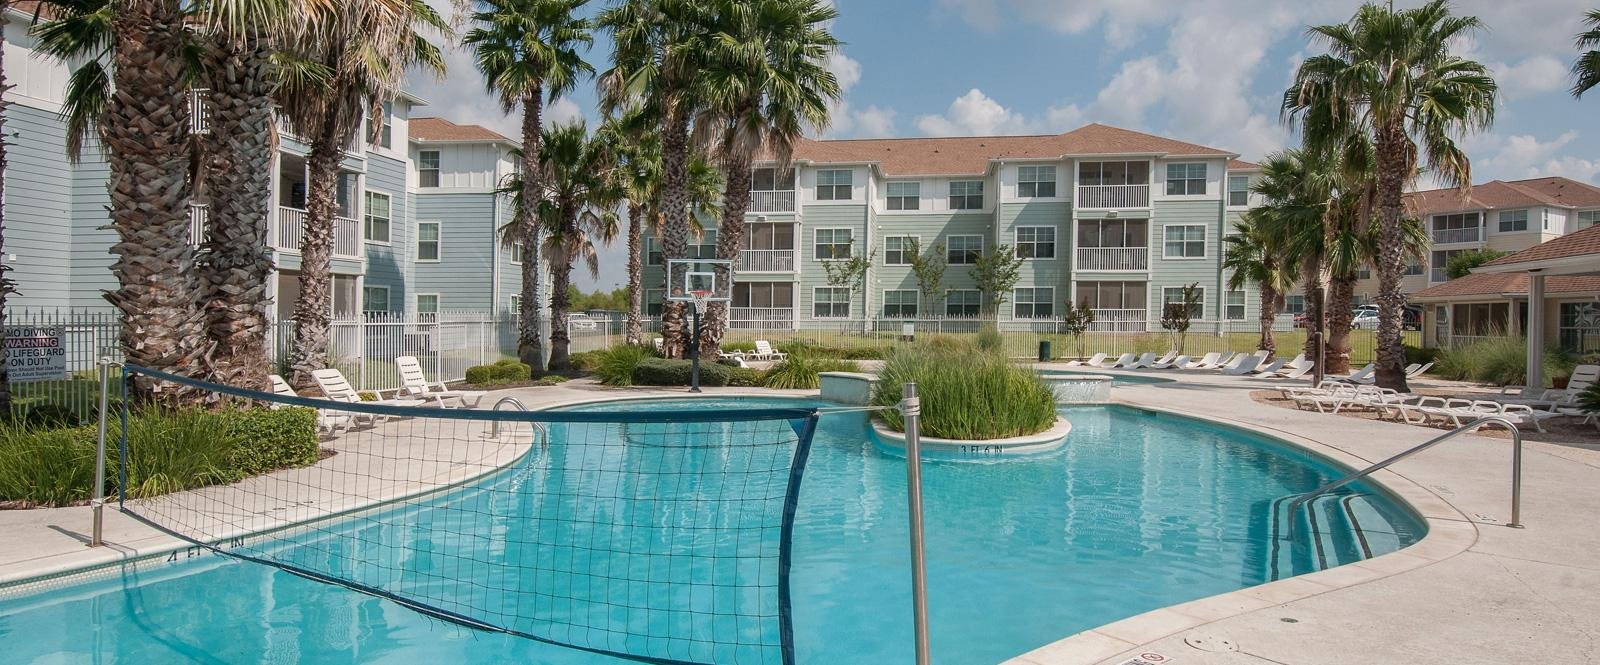 Studio Apartments In San Marcos See Nearby Apartments With Studio Apartments In San Marcos